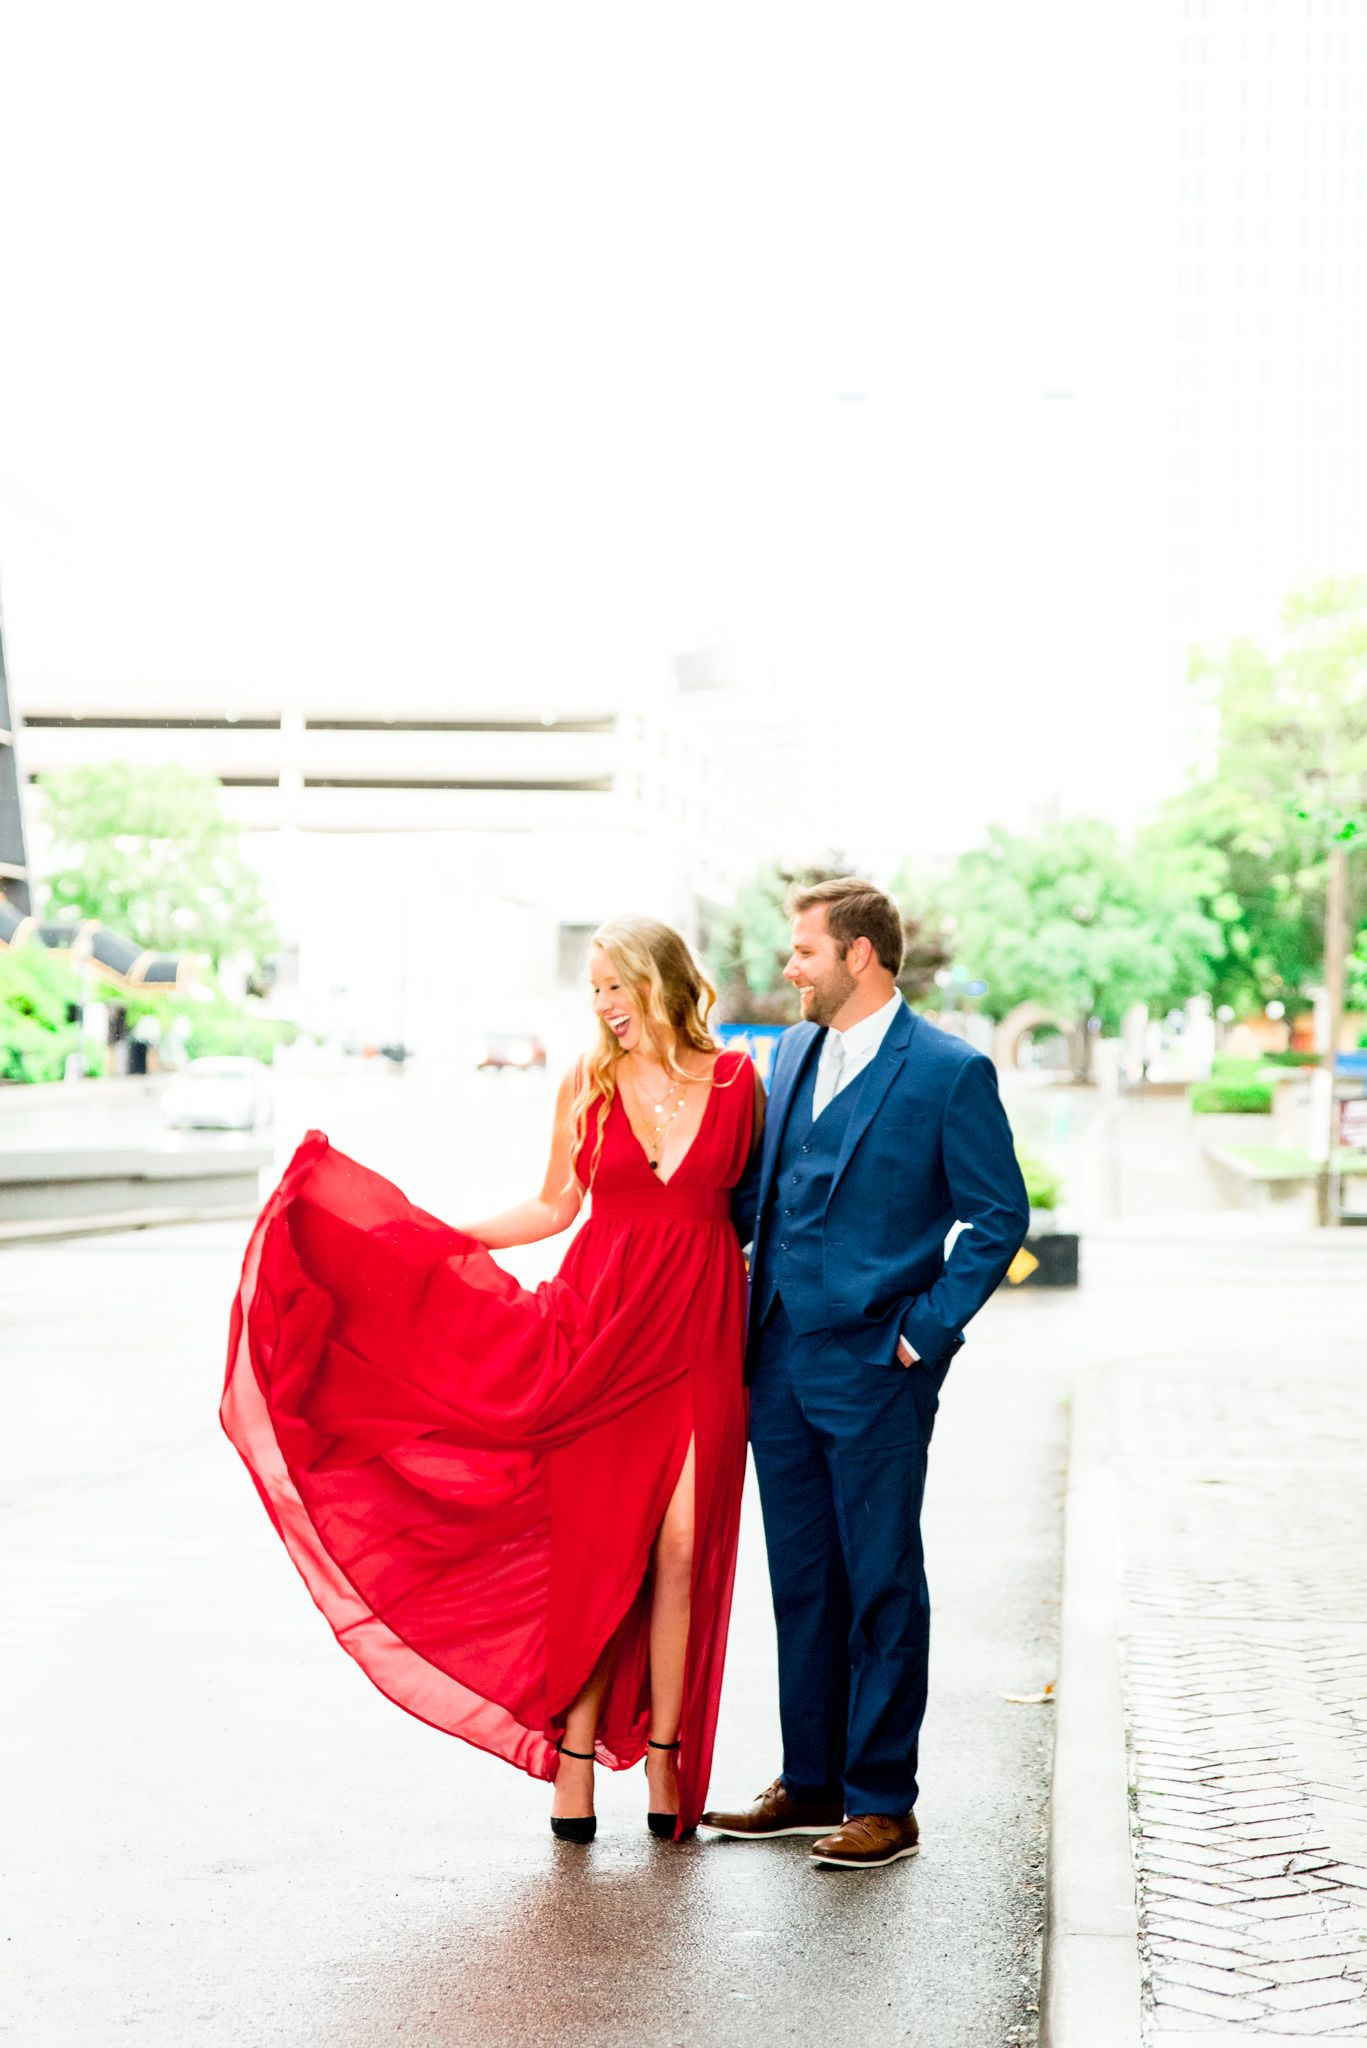 blonde woman in red dress holds hand leading fiance in navy suit outdoors